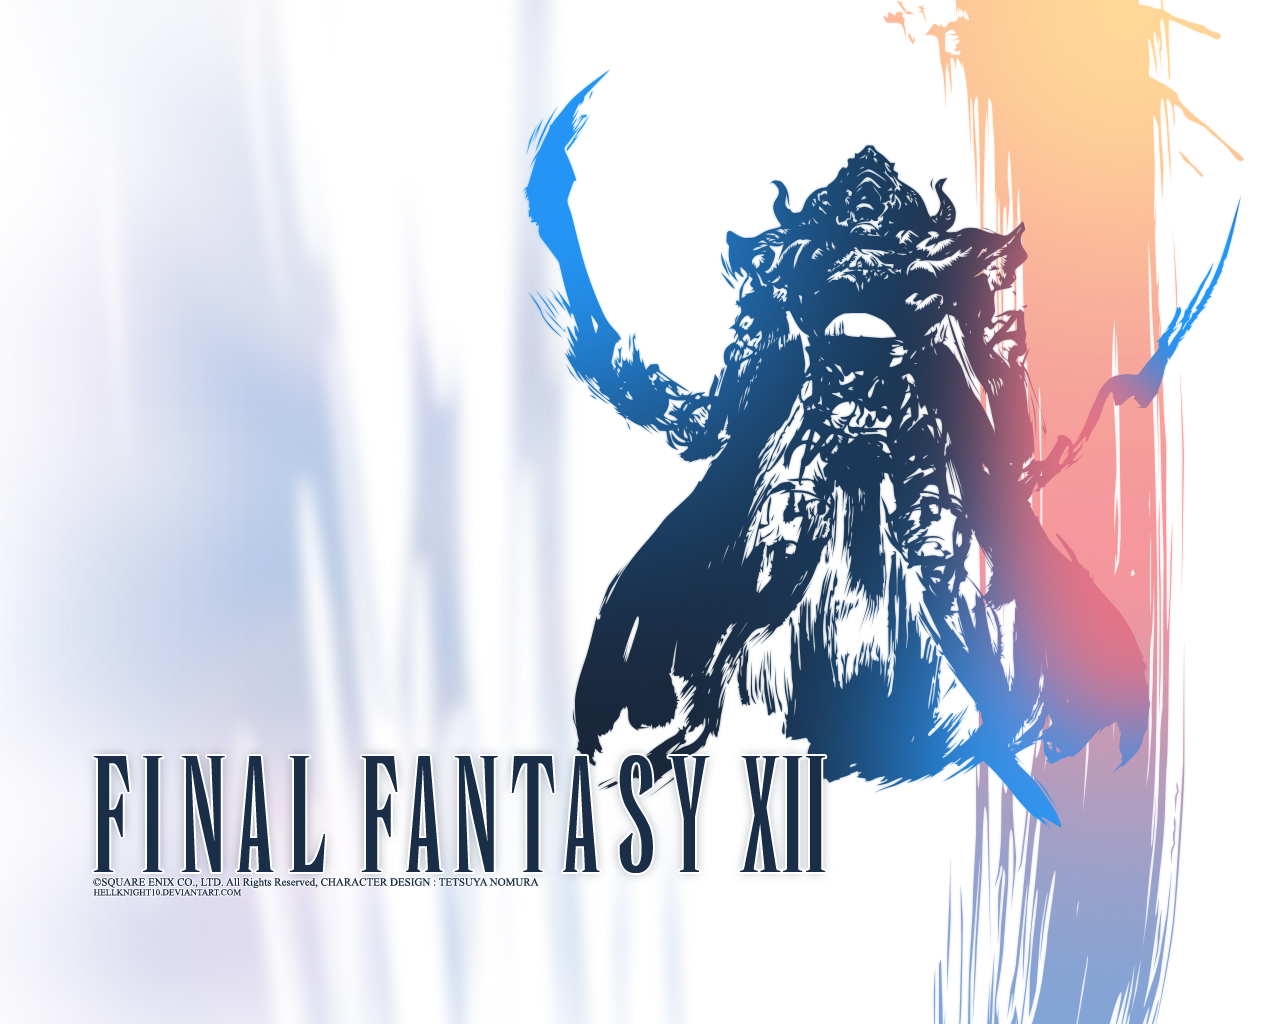 Final Fantasy 12 Wallpaper: Final Fantasy XII HD Remaster Teased In Upcoming Strategy